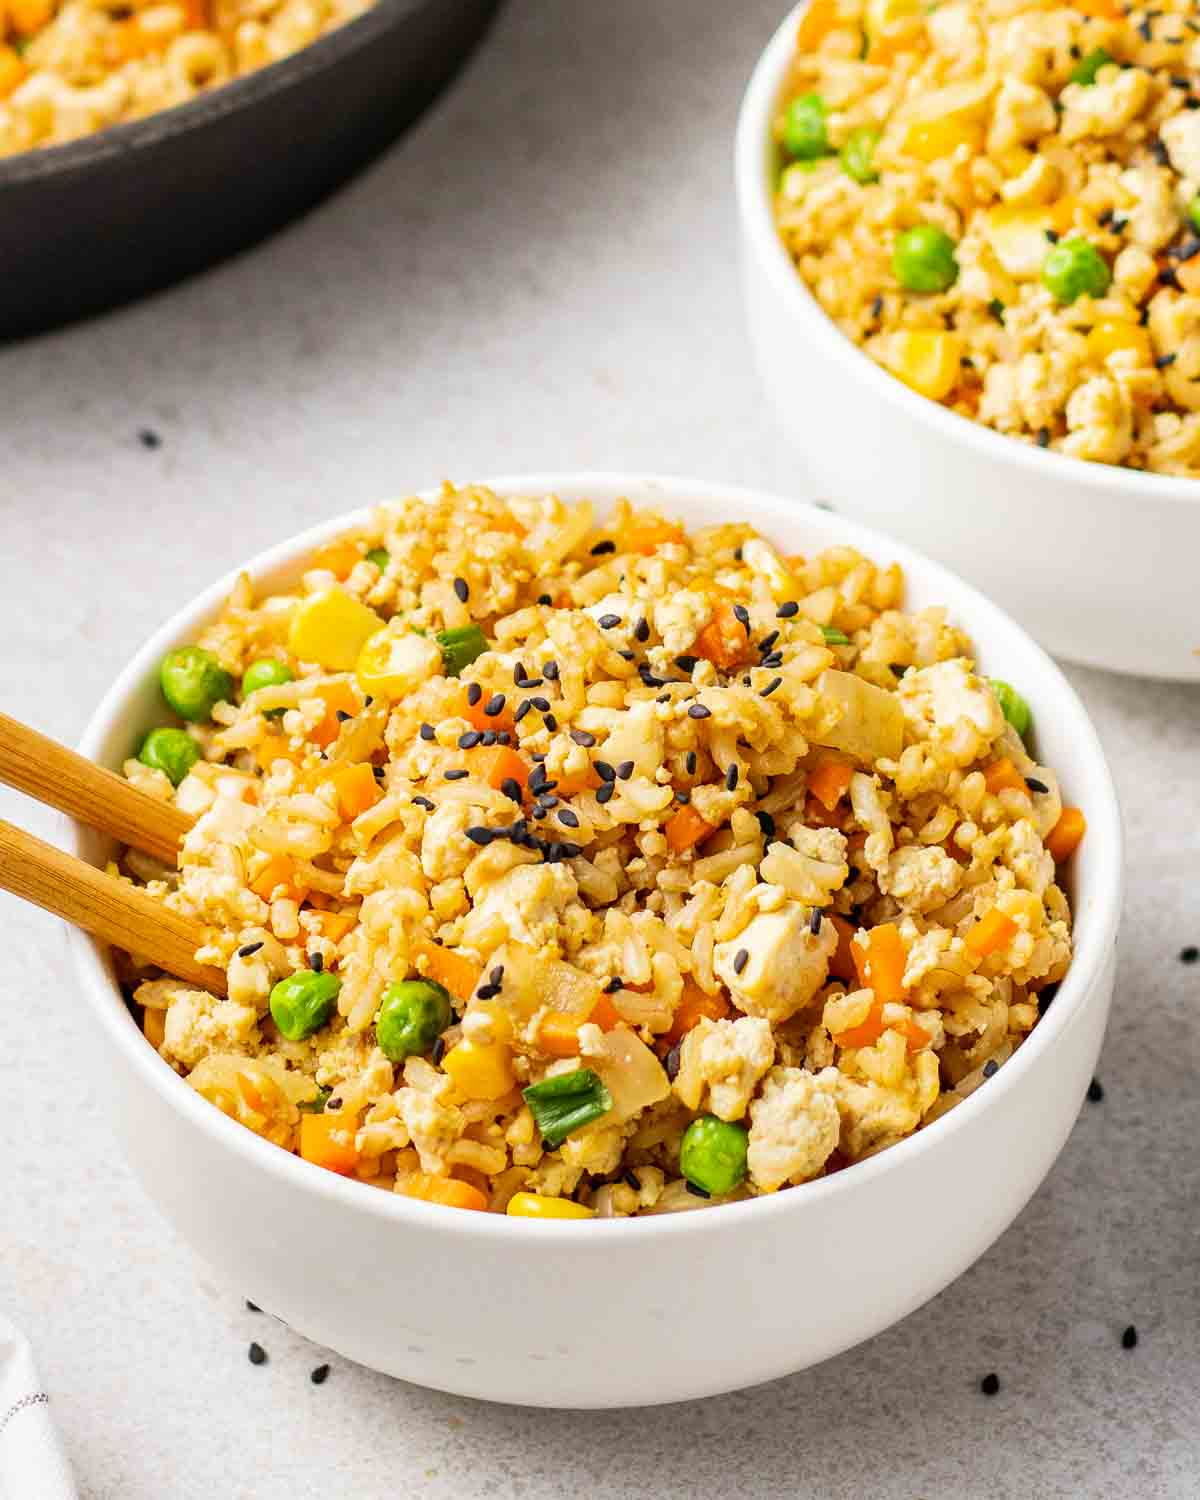 Fried rice in a white bowl with a pair of chopsticks. There is another bowl of rice and skillet in the background.